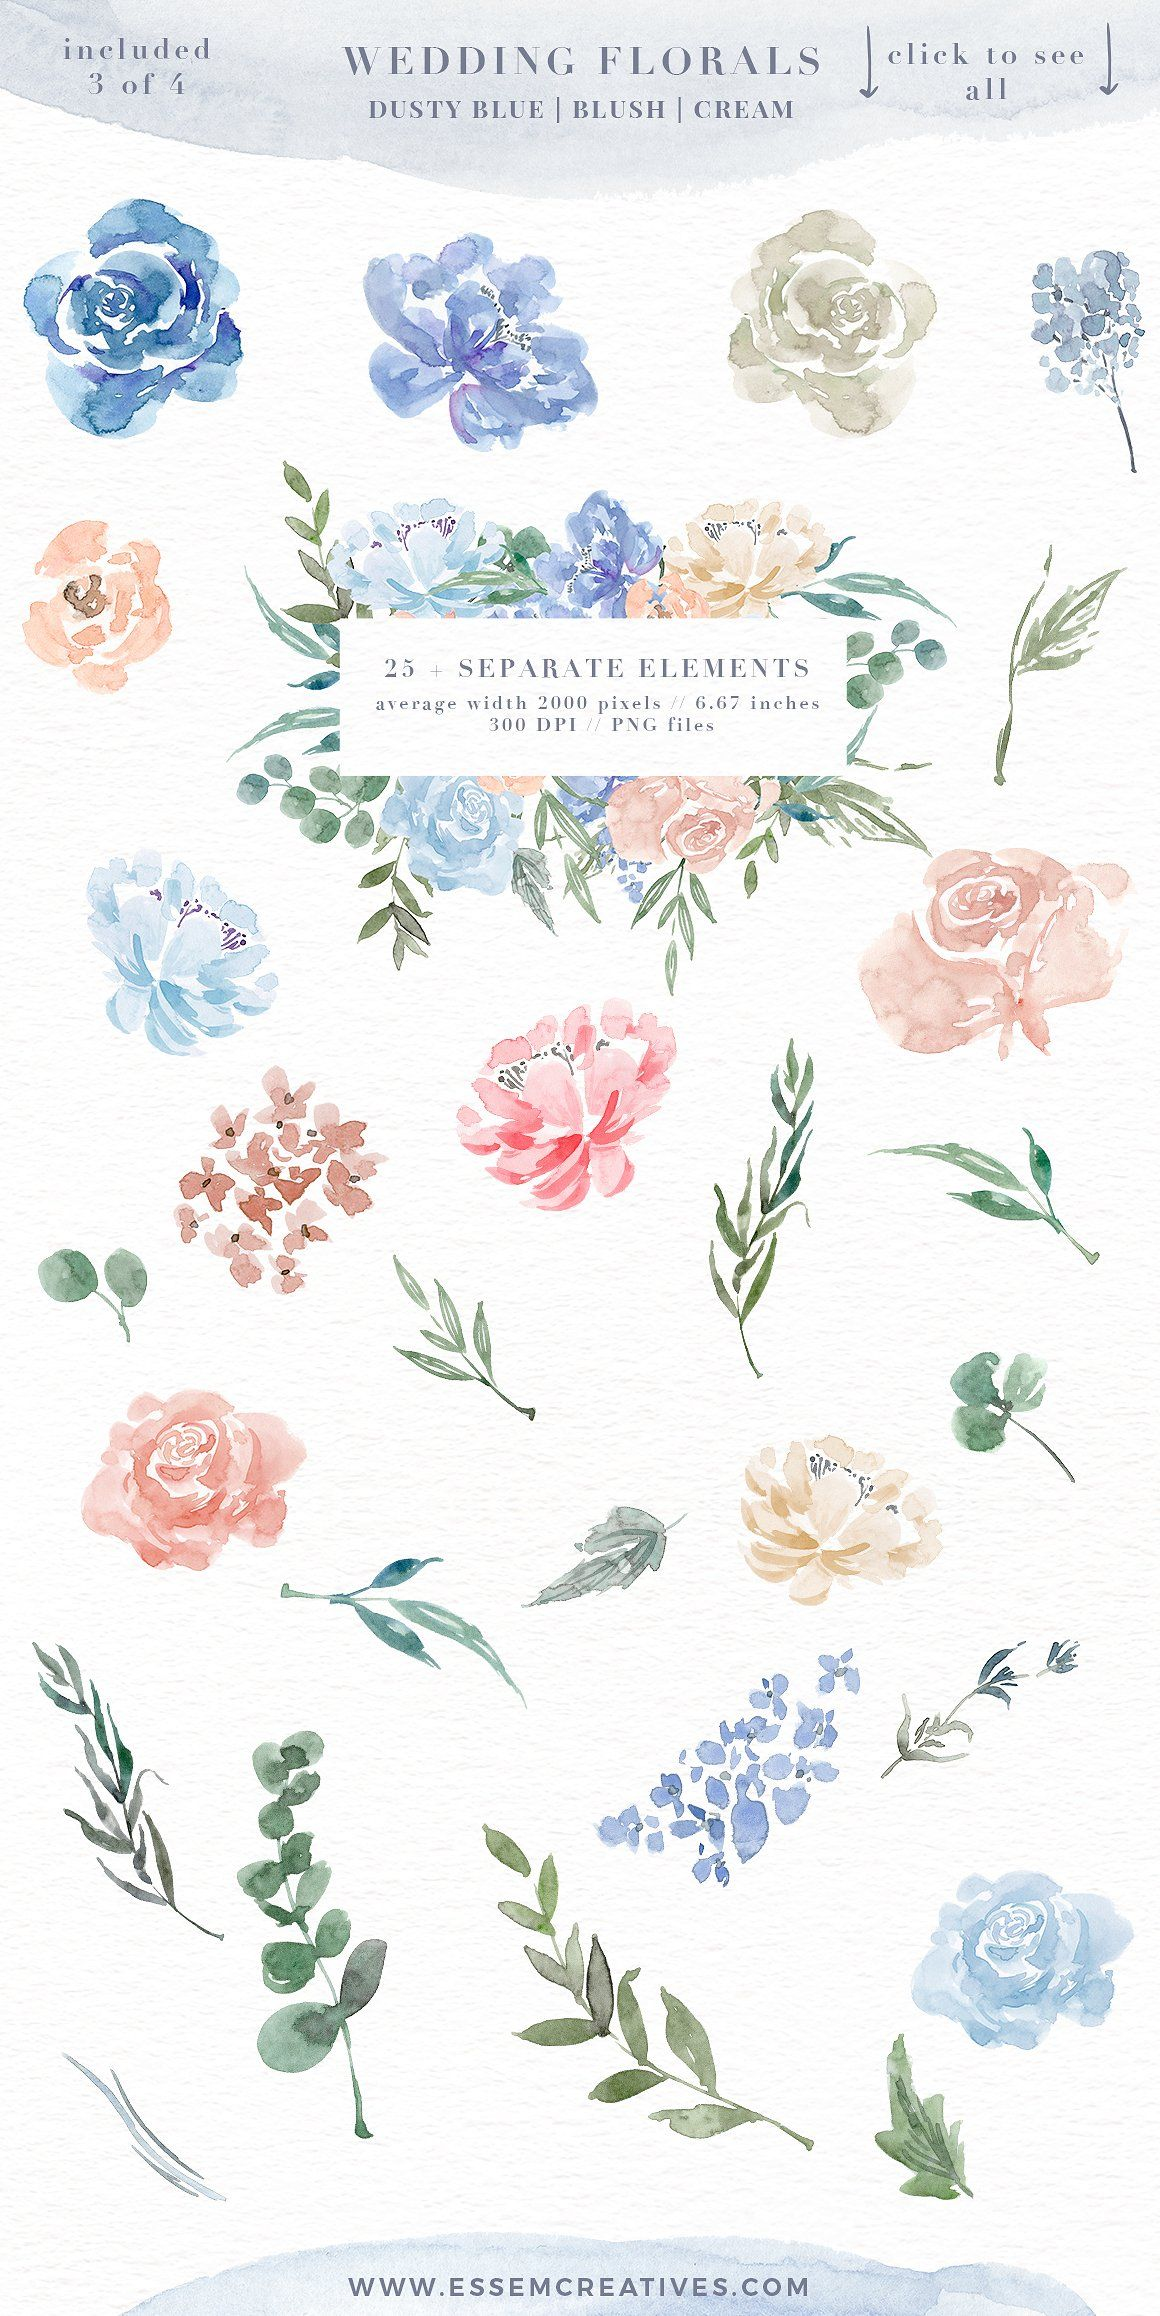 Dusty rose colored flower free clipart boarder download Wedding Watercolor Flowers Graphics Clipart, Dusty Blue Blush Pink ... download